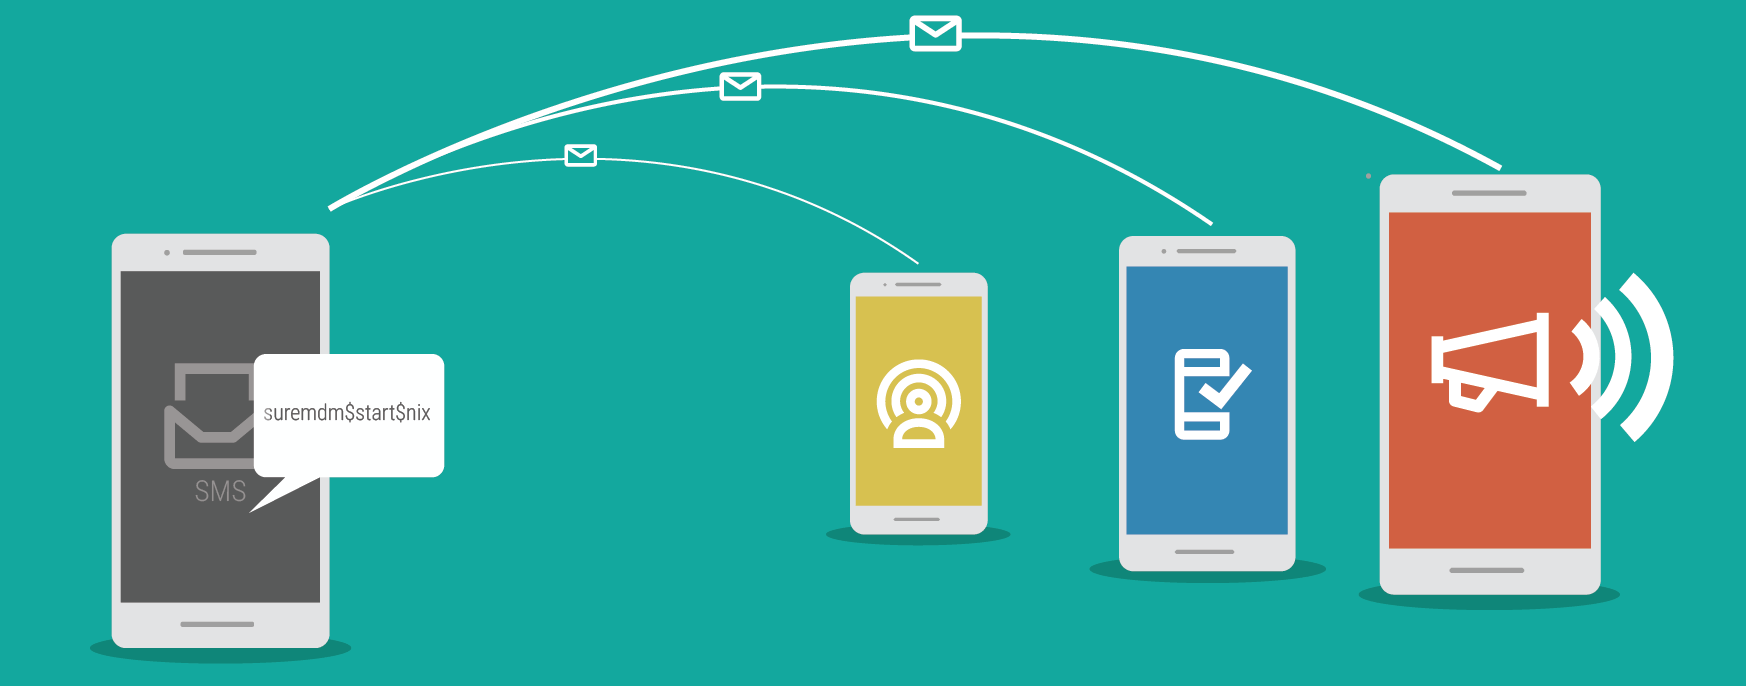 Learn 5 different ways to hack someone's device picture